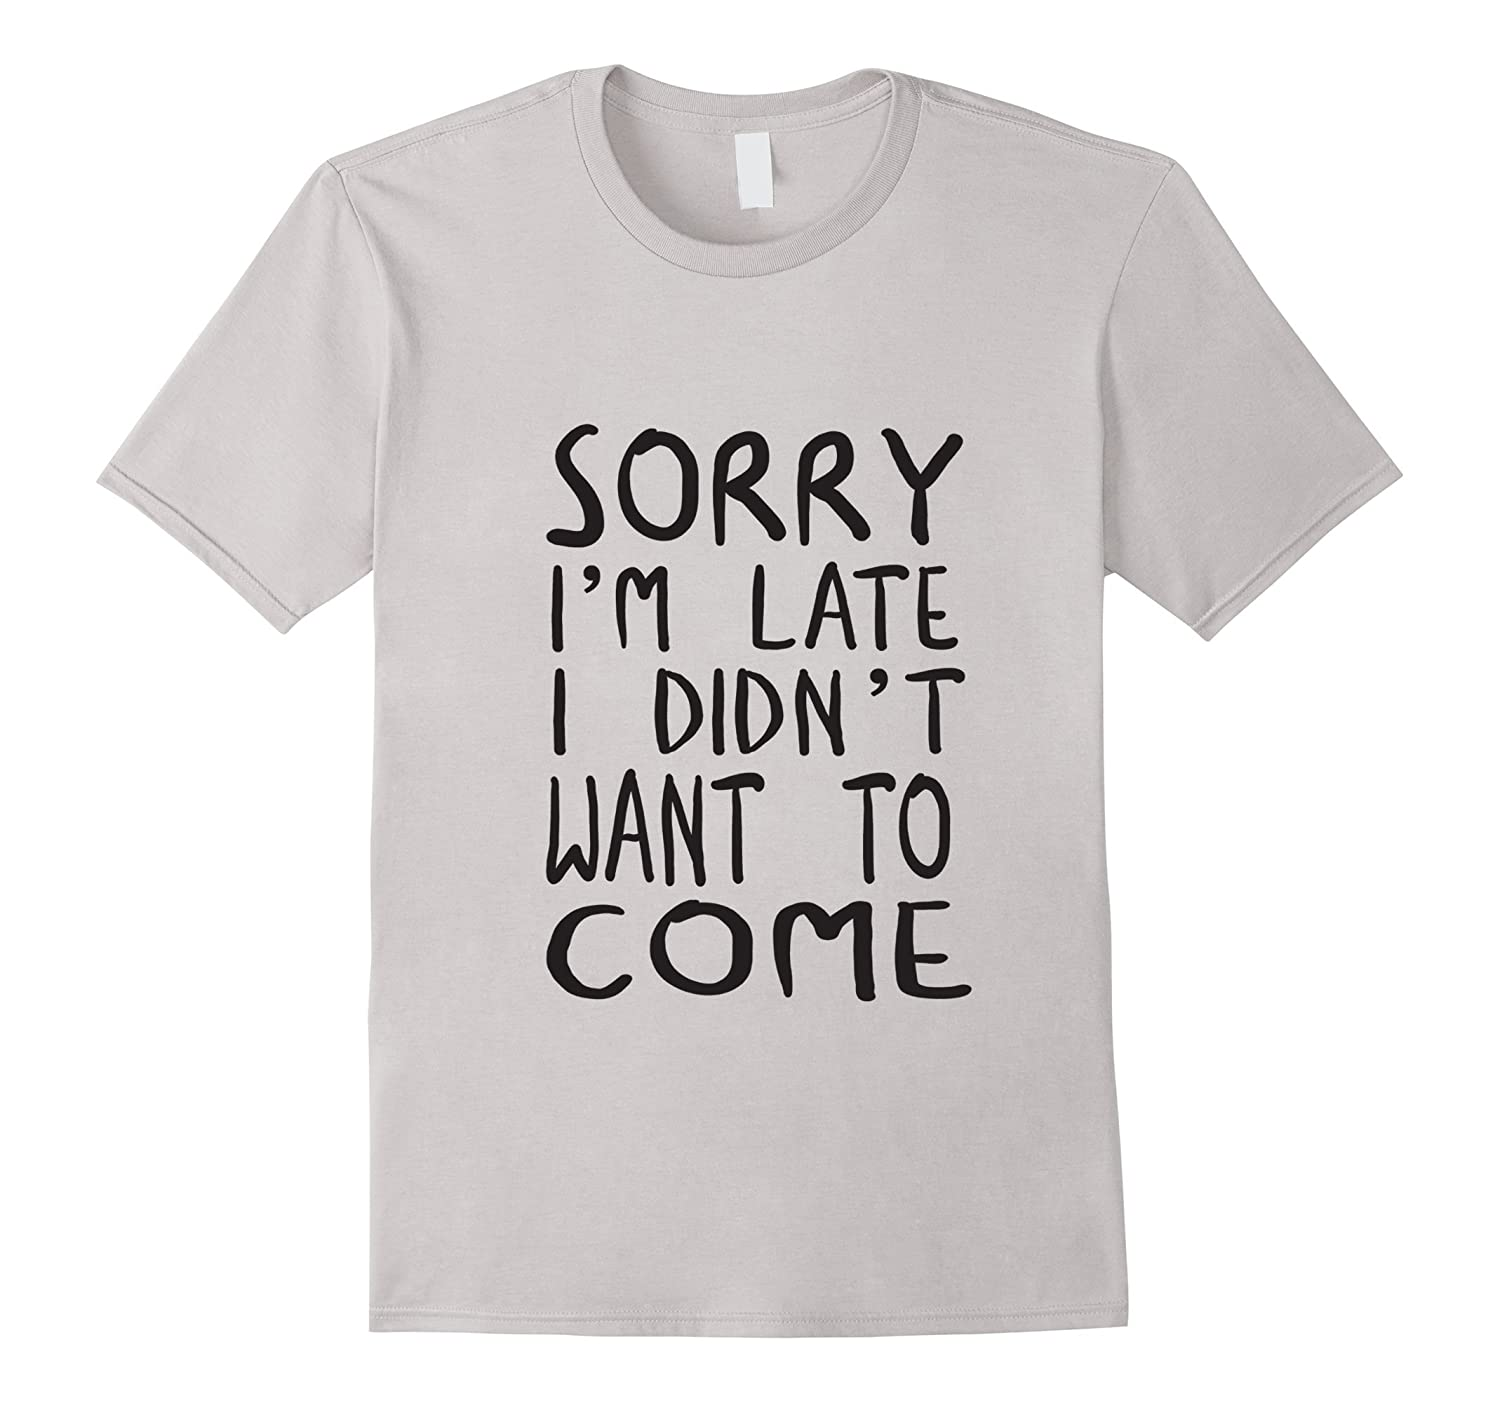 2eafca75 SORRY I'M LATE I DIDN'T WANT TO COME TSHIRT FUNNY HUMOR TEE-BN ...